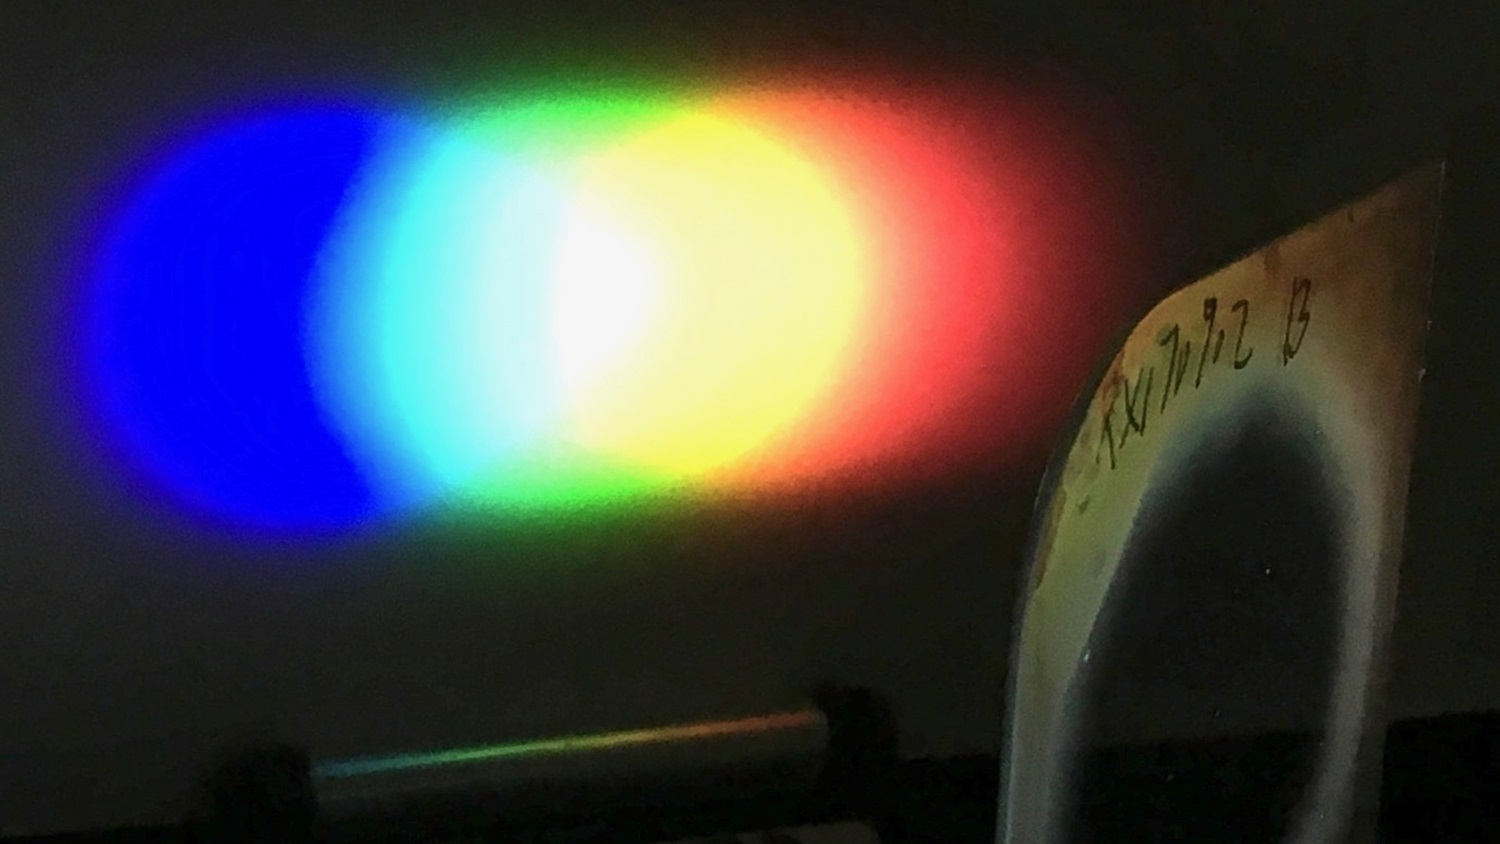 A one-inch diameter Bragg polarization grating diffracts white light from an LED flashlight onto a screen placed nearby